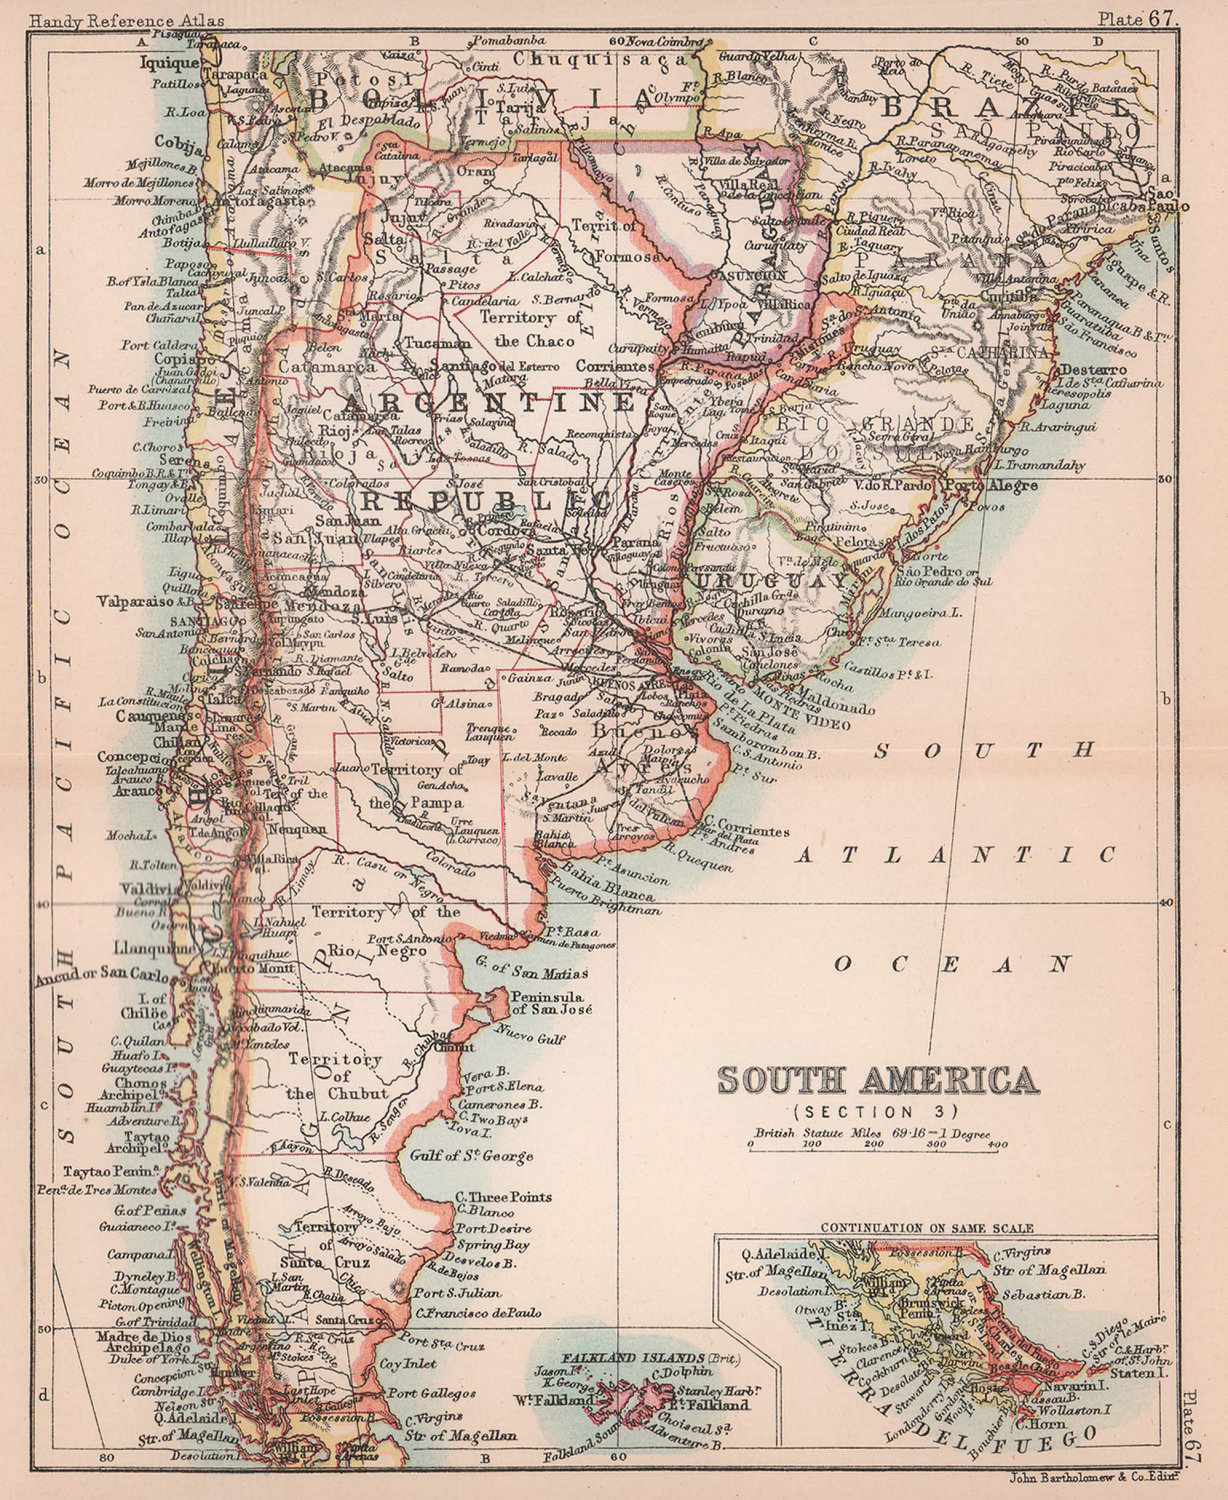 South America #3. Argentina Chile Patagonia Paraguay. BARTHOLOMEW 1893 old map